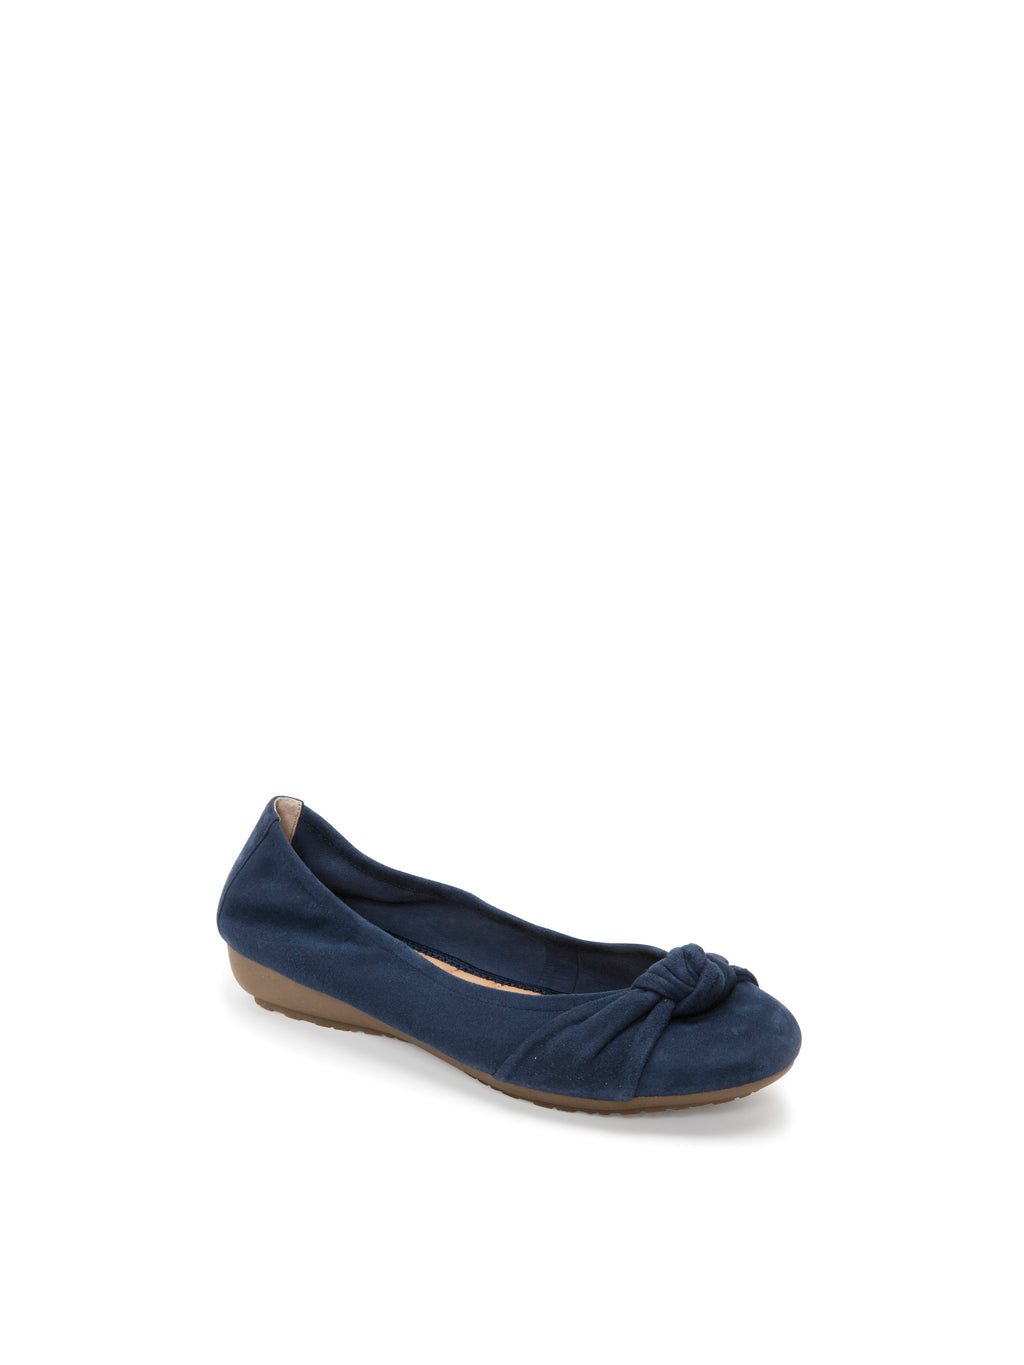 Jaci Blue Nights Suede -  FLAT - ...me Too